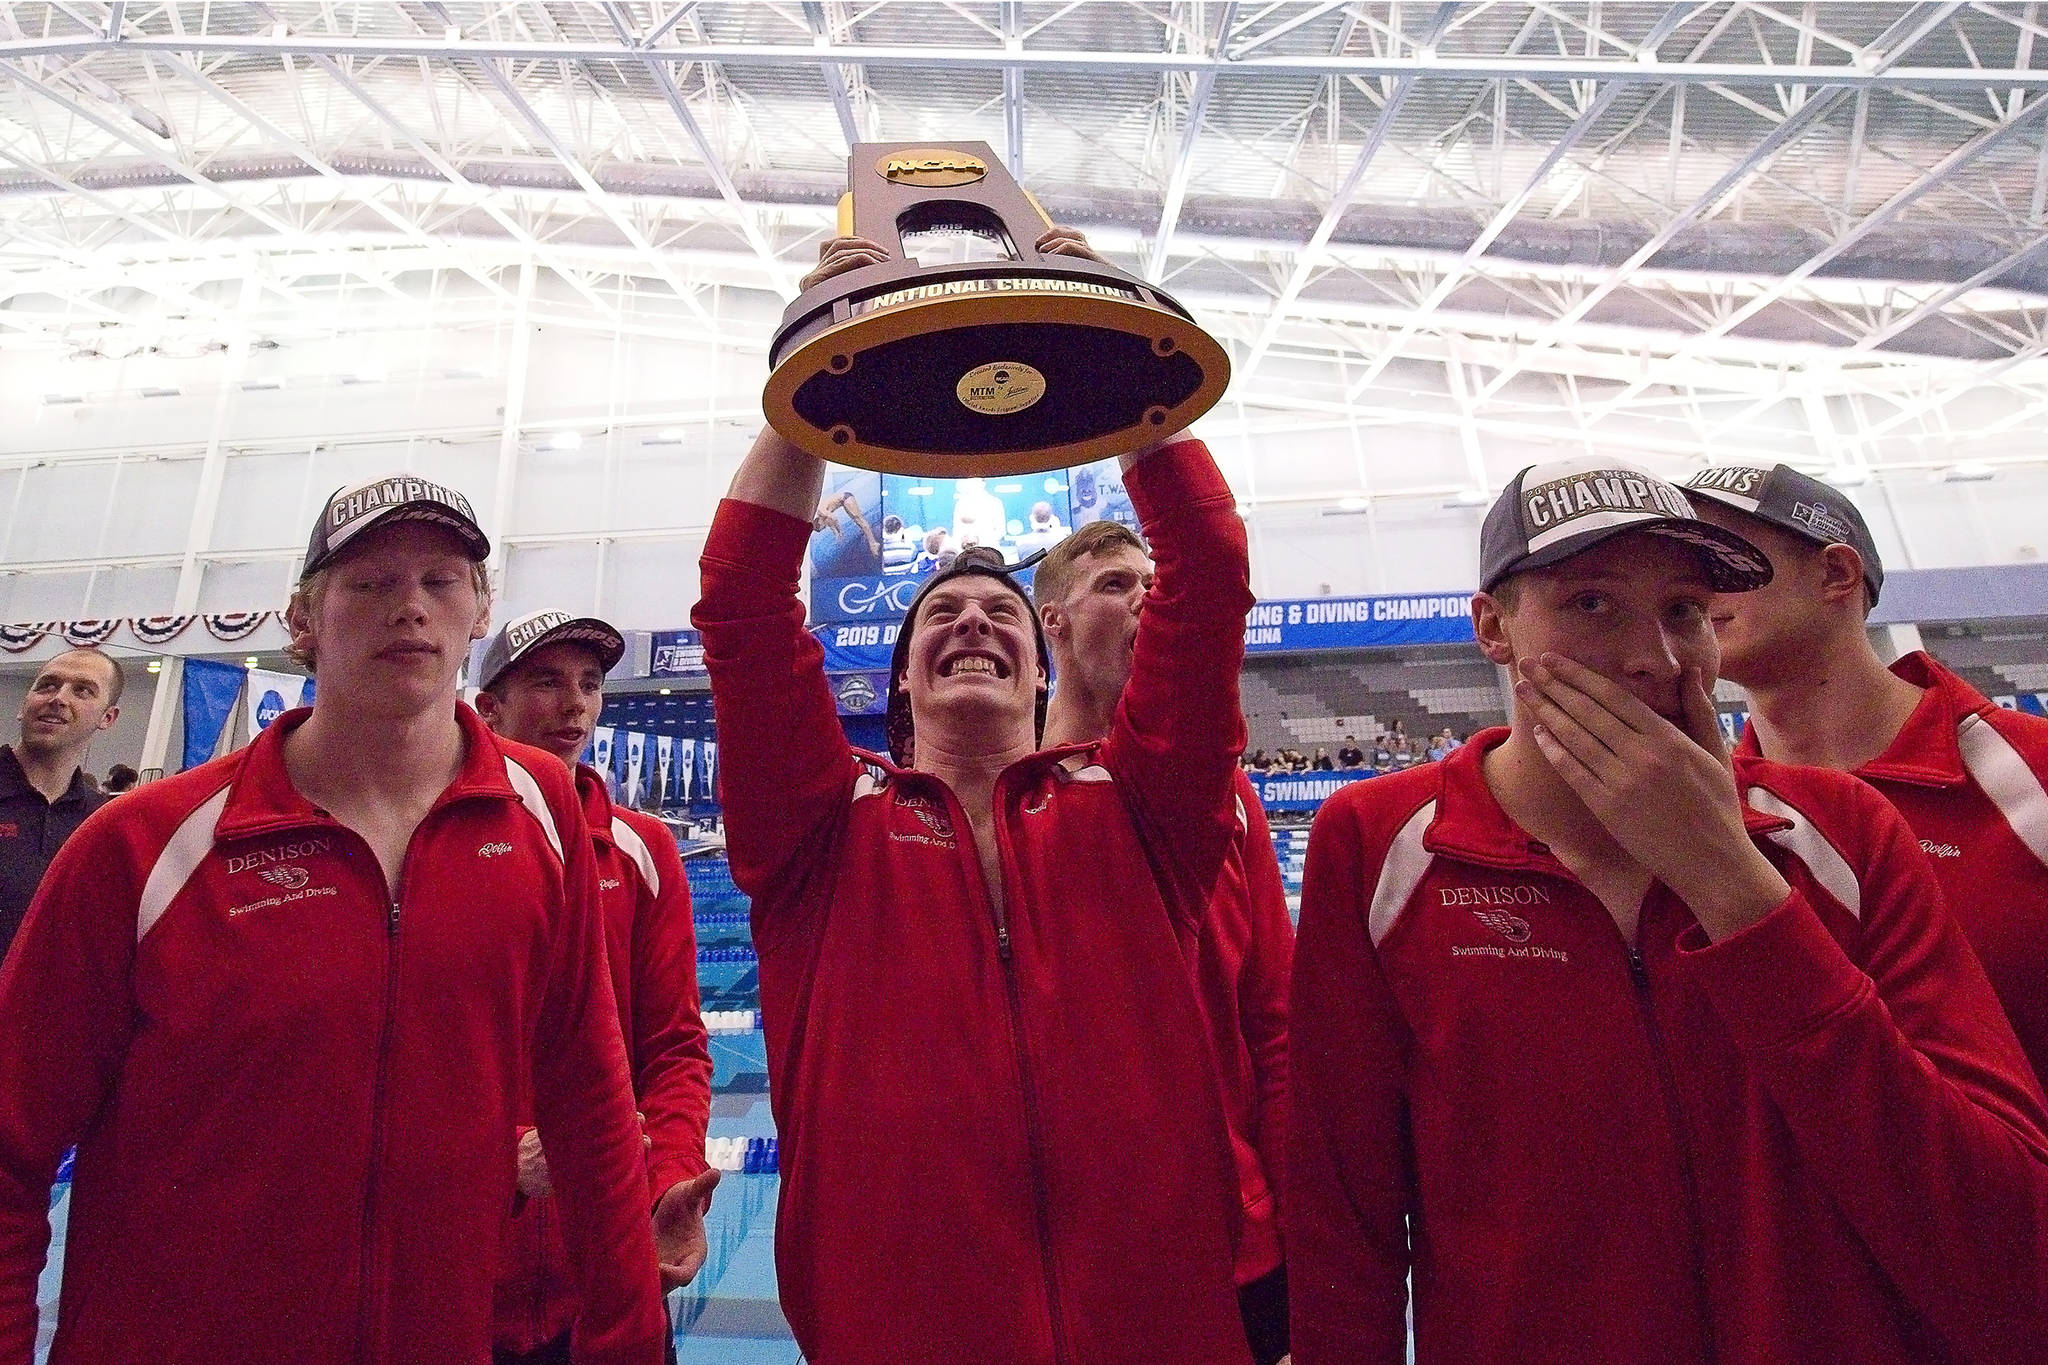 Denison University senior Kenny Fox celebrates his team's national championship at the 2019 NCAA Division III Swimming & Diving Championships at Greensboro Aquatic Center in Greensboro, North Carolina, on Saturday, March 30, 2019. (Courtesy Photo | Linda Striggo)